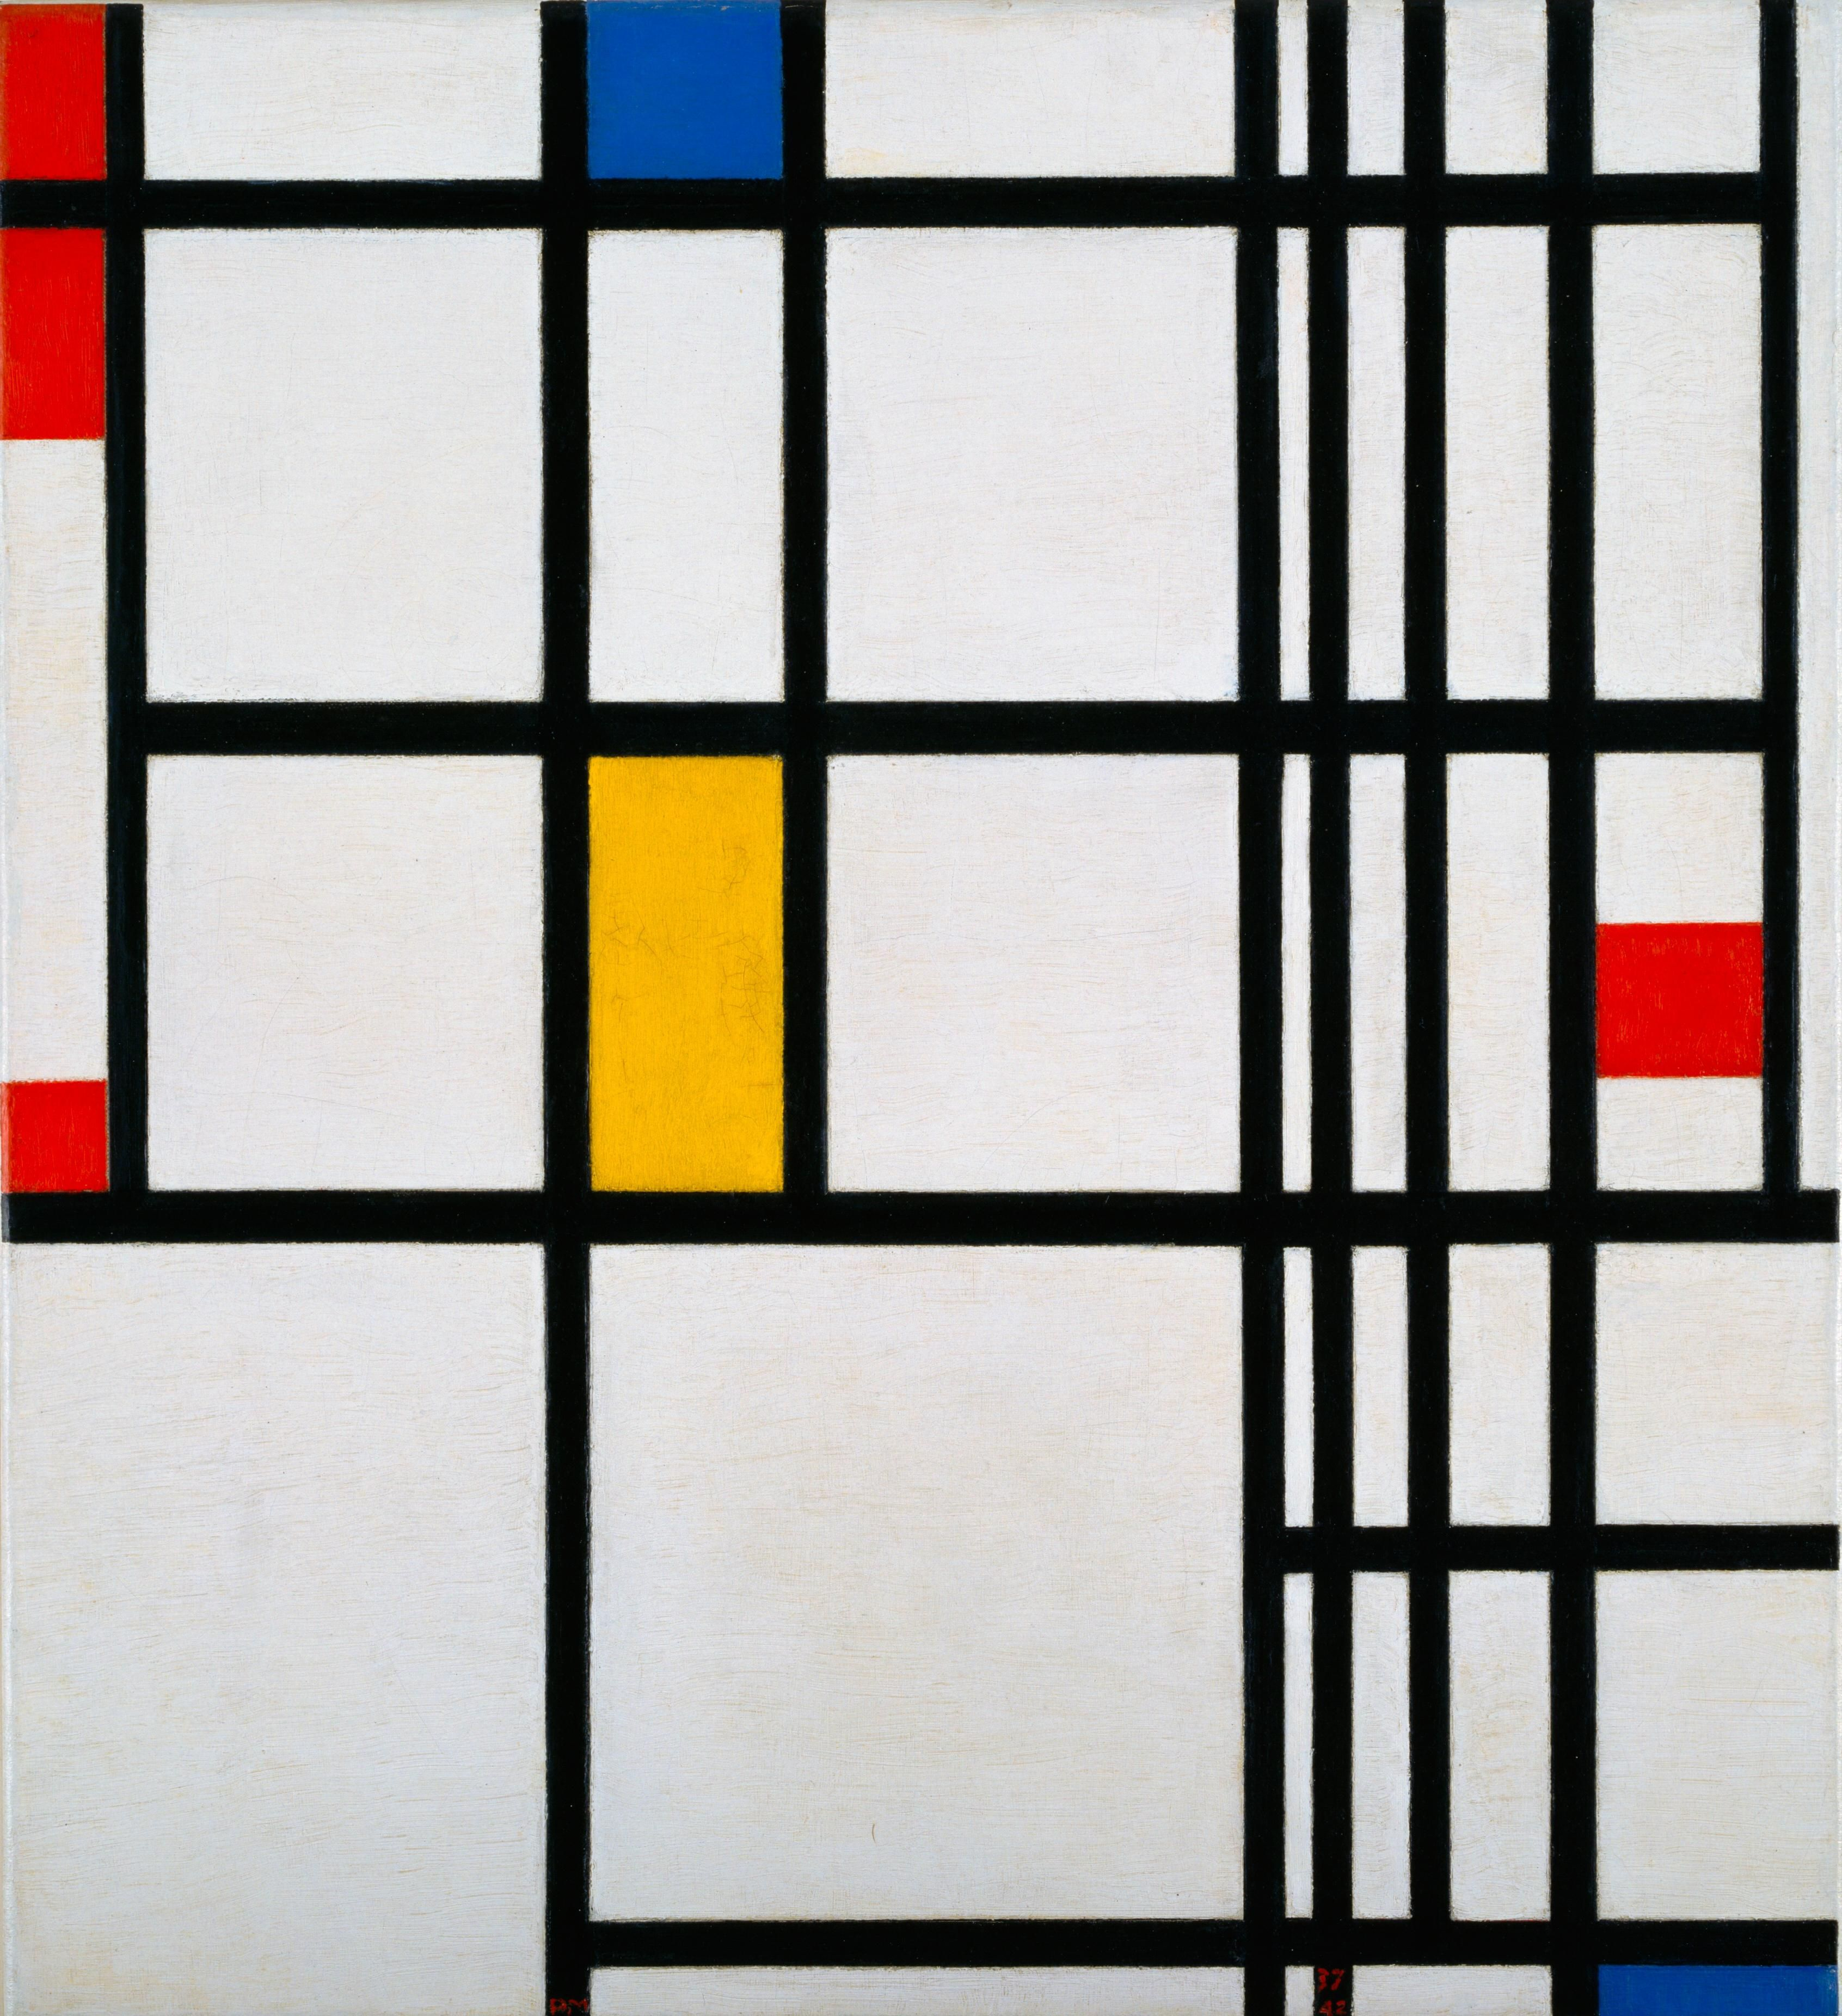 Composition Of Lines In Art : Mondrian composition in red blue and yellow vertical